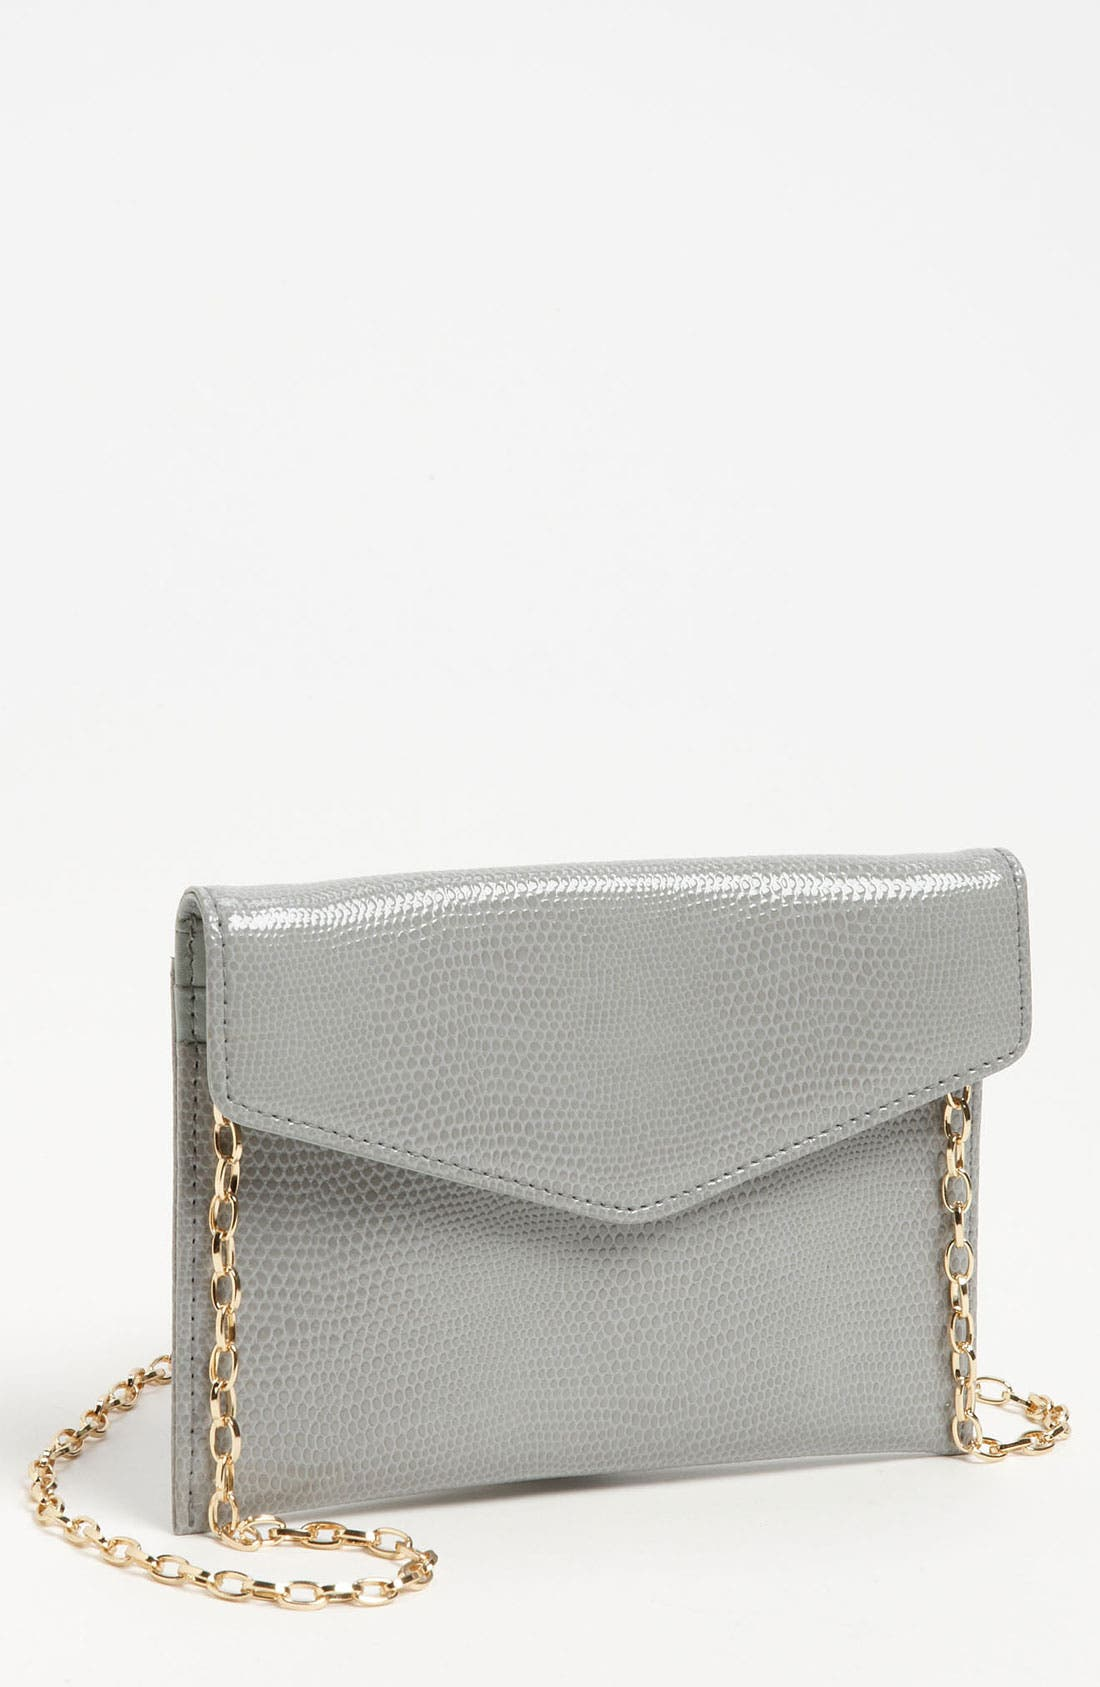 Alternate Image 1 Selected - Halogen 'Amy' Lizard Embossed Leather Crossbody Bag